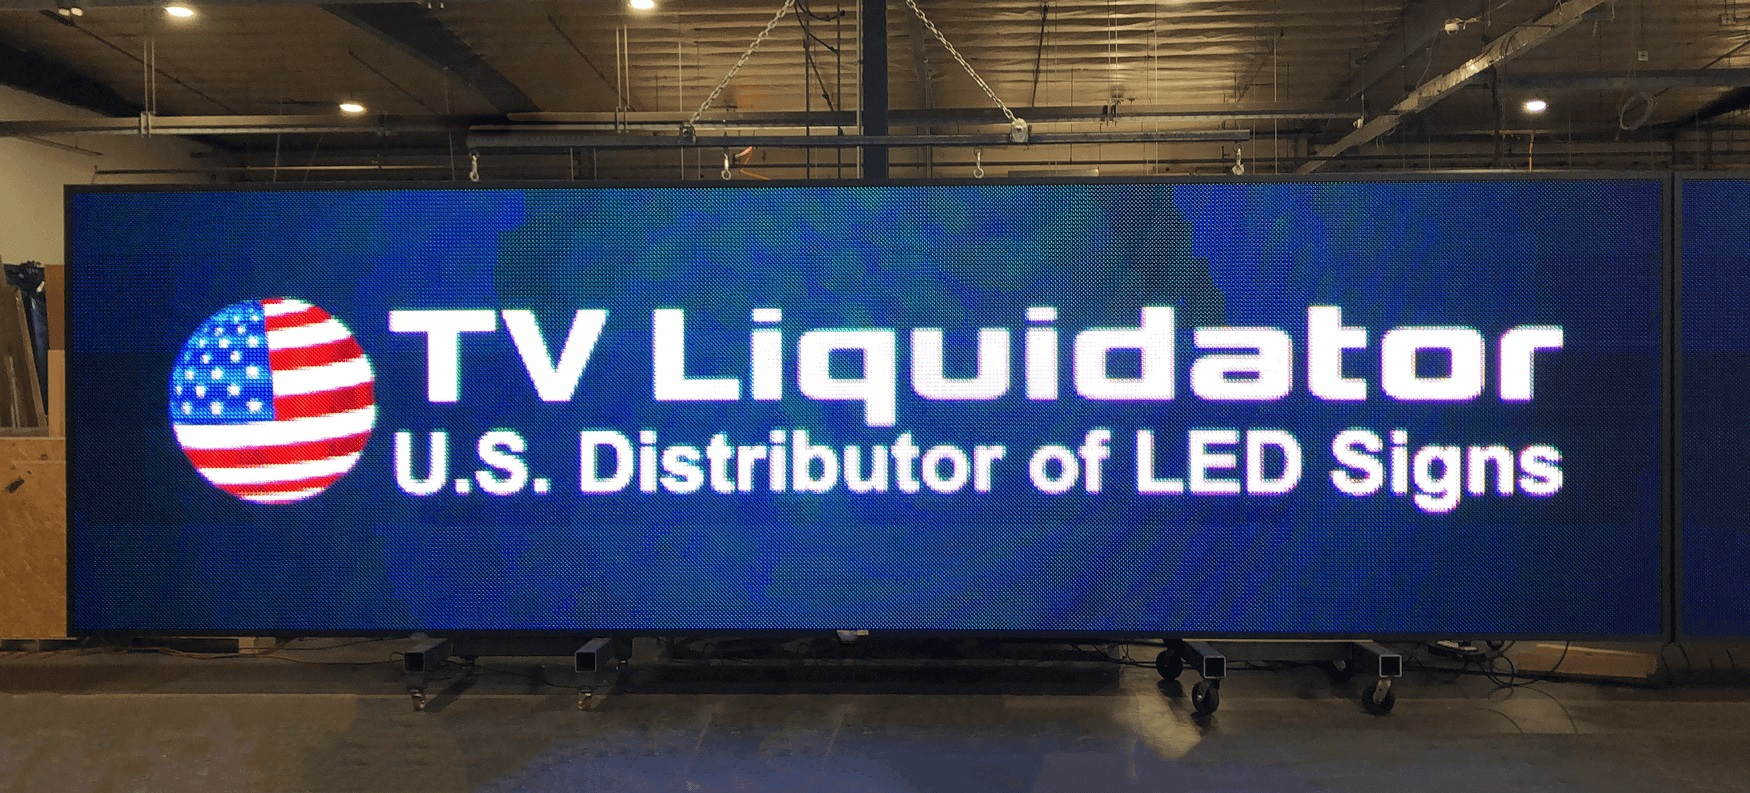 Custom Sized LED Billboards